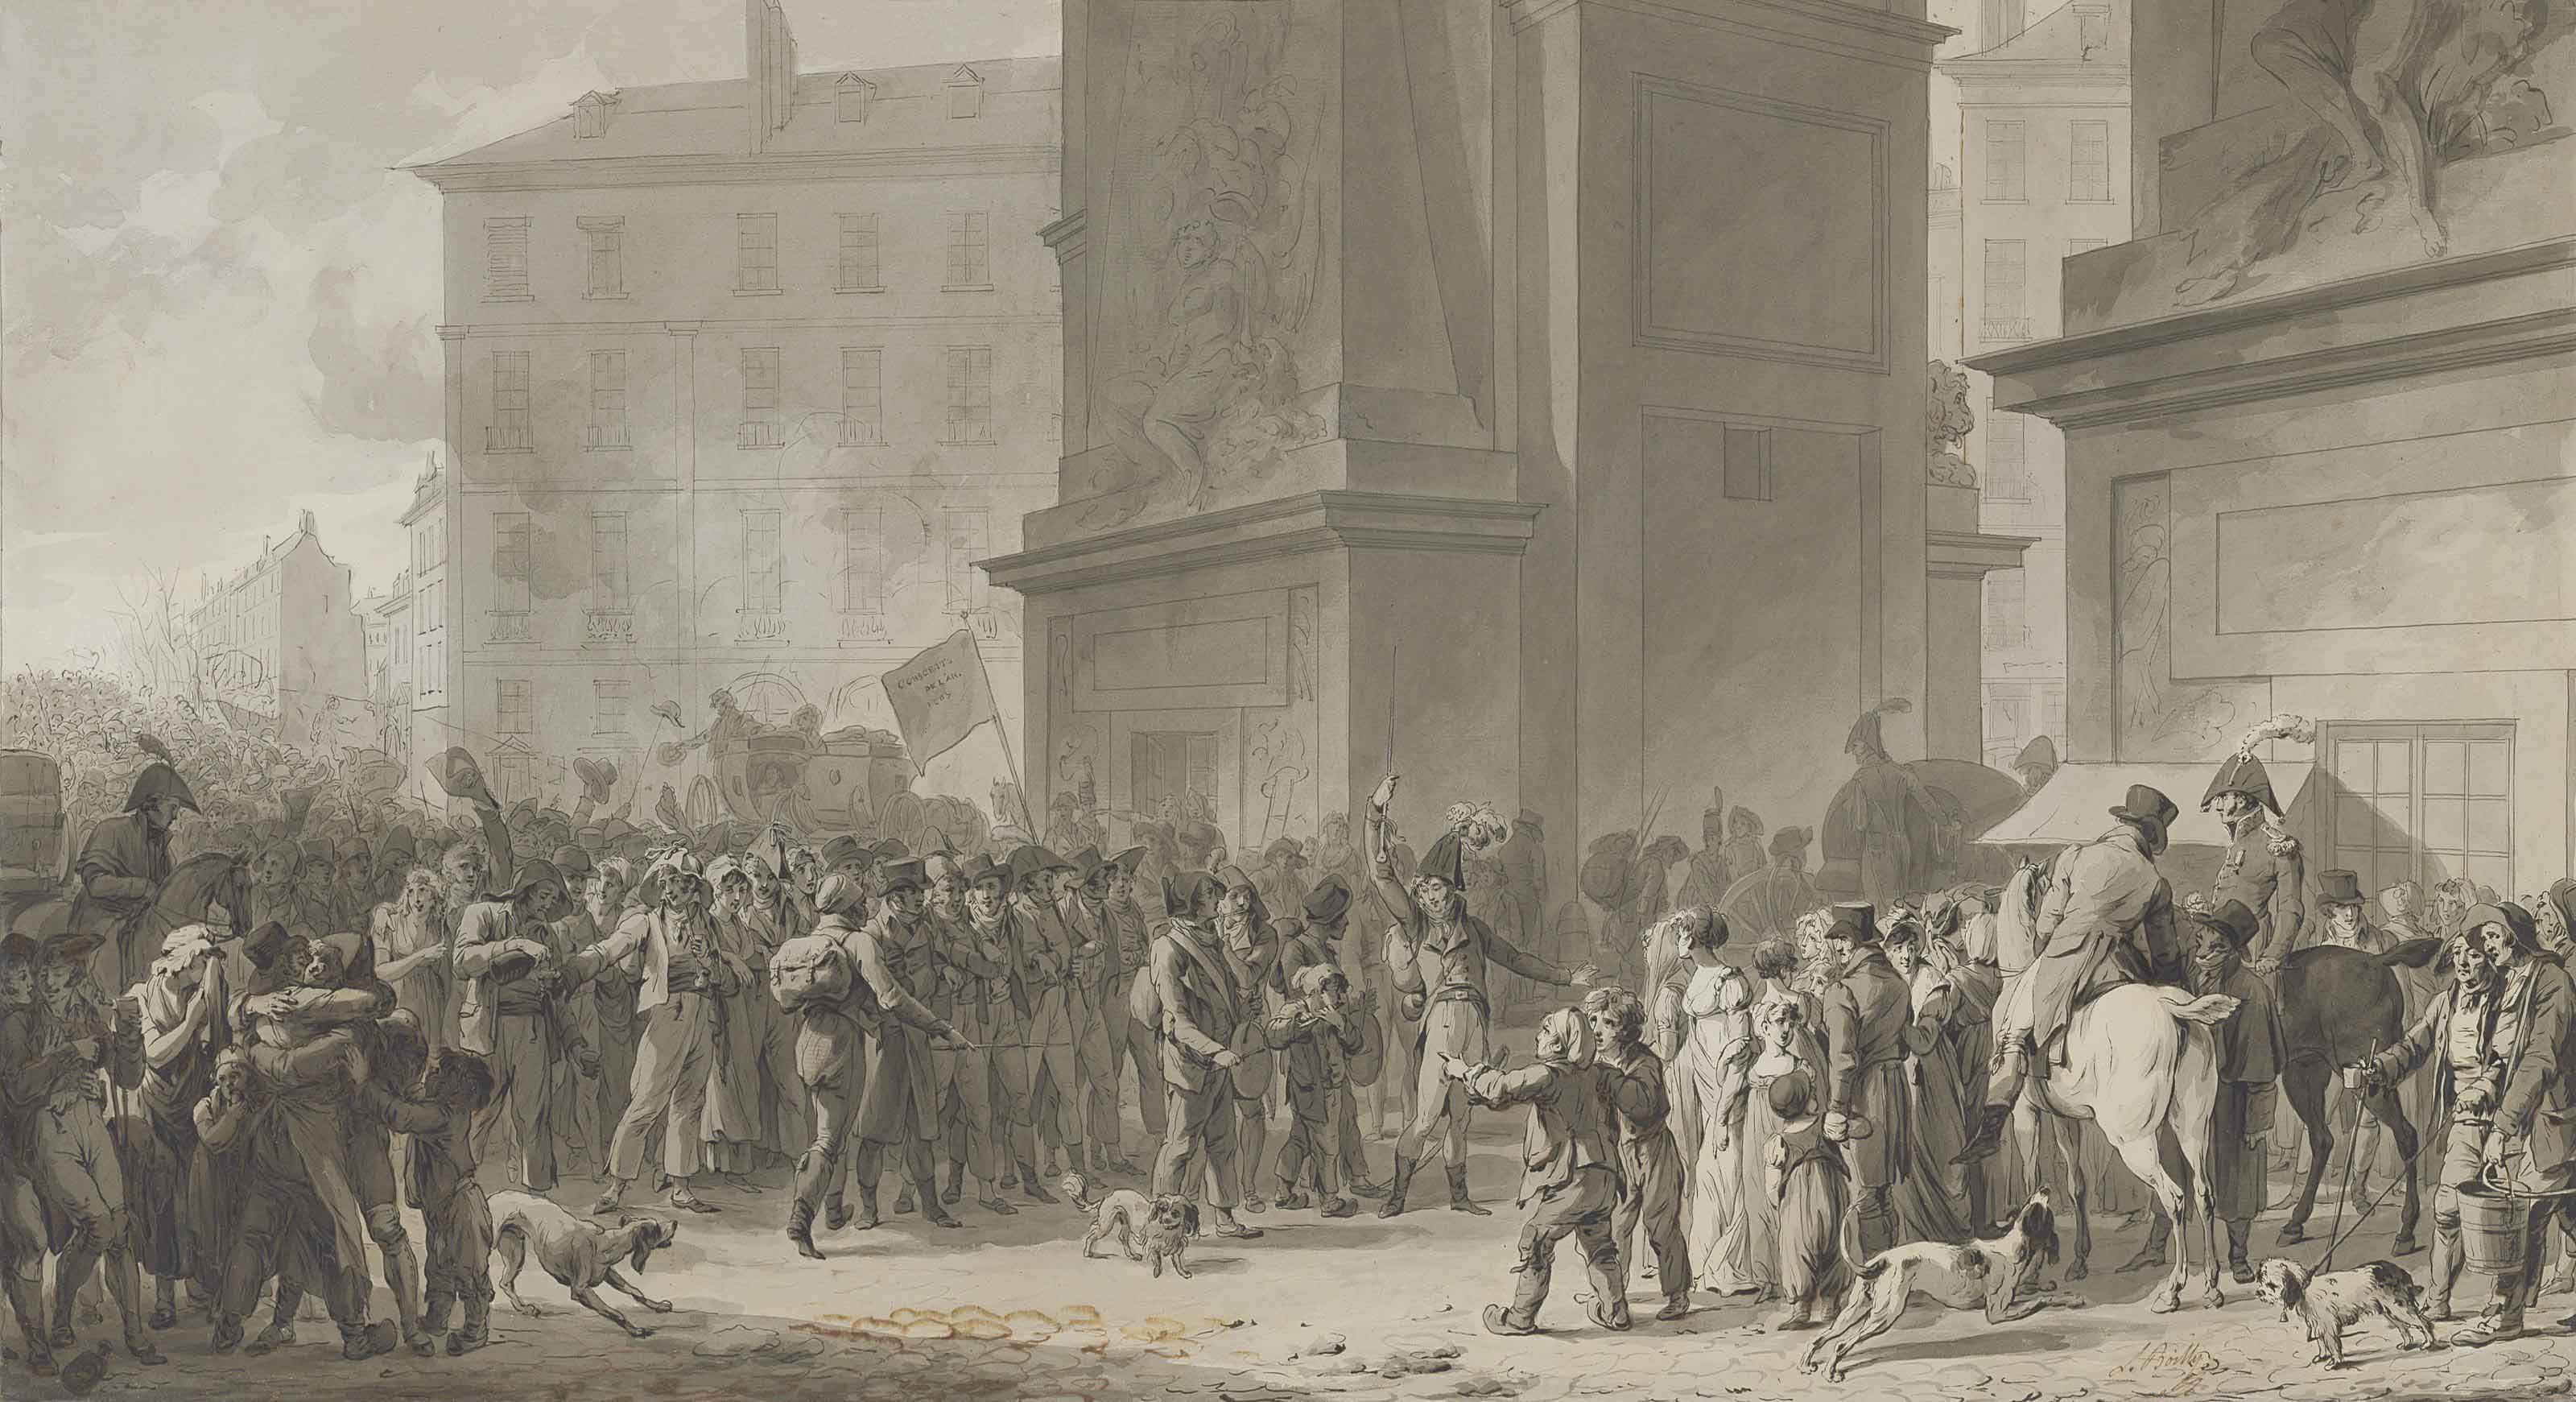 The departure of the conscripts on 2 February 1807 in front of the Porte Saint-Denis, Paris